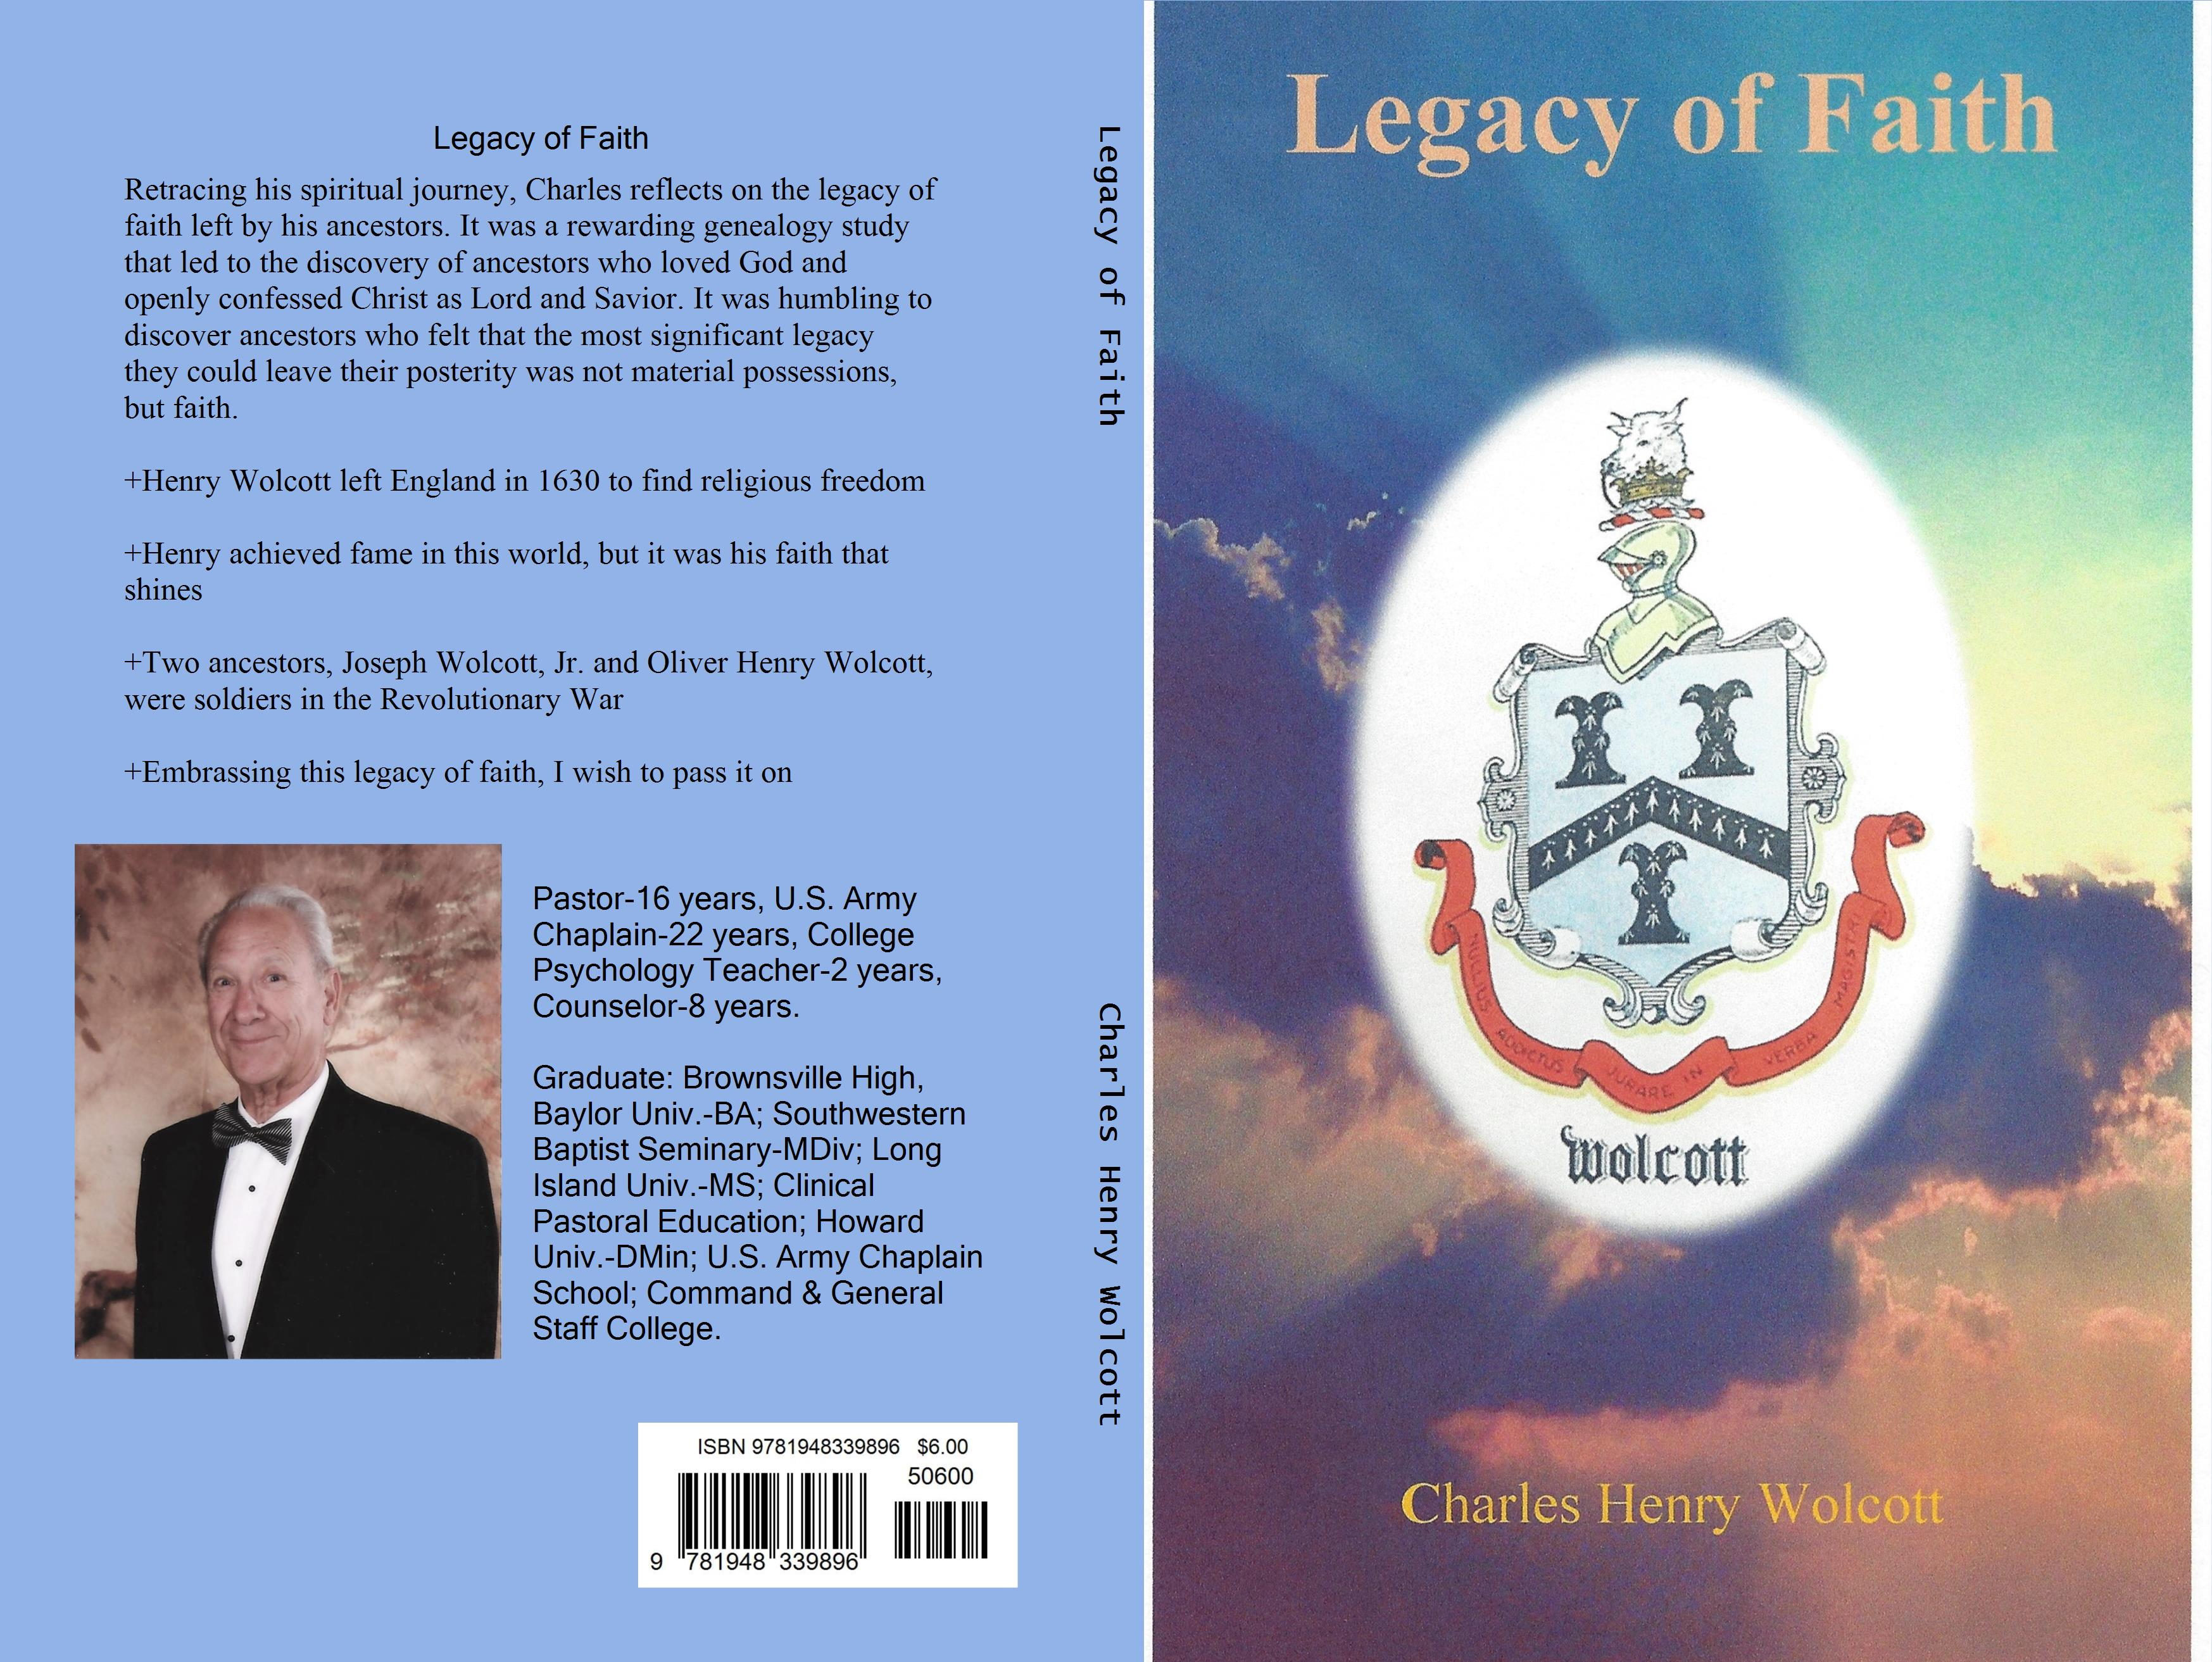 Legacy of Faith cover image